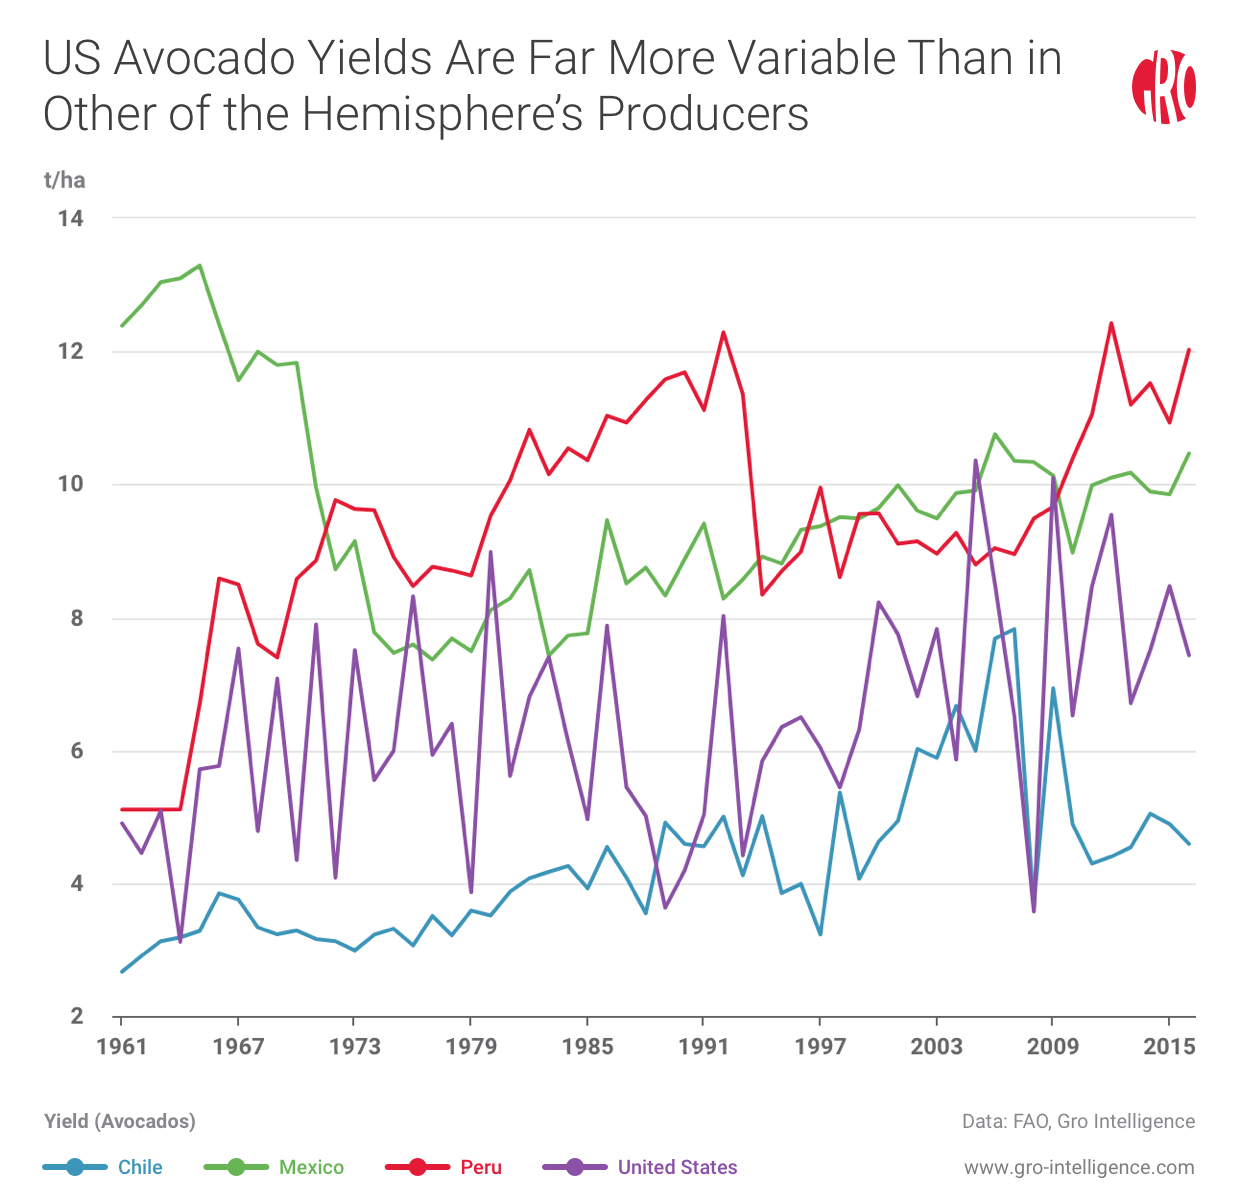 US Avocado Yields Are Far More Variable Than in Other of the Hemisphere's Producers